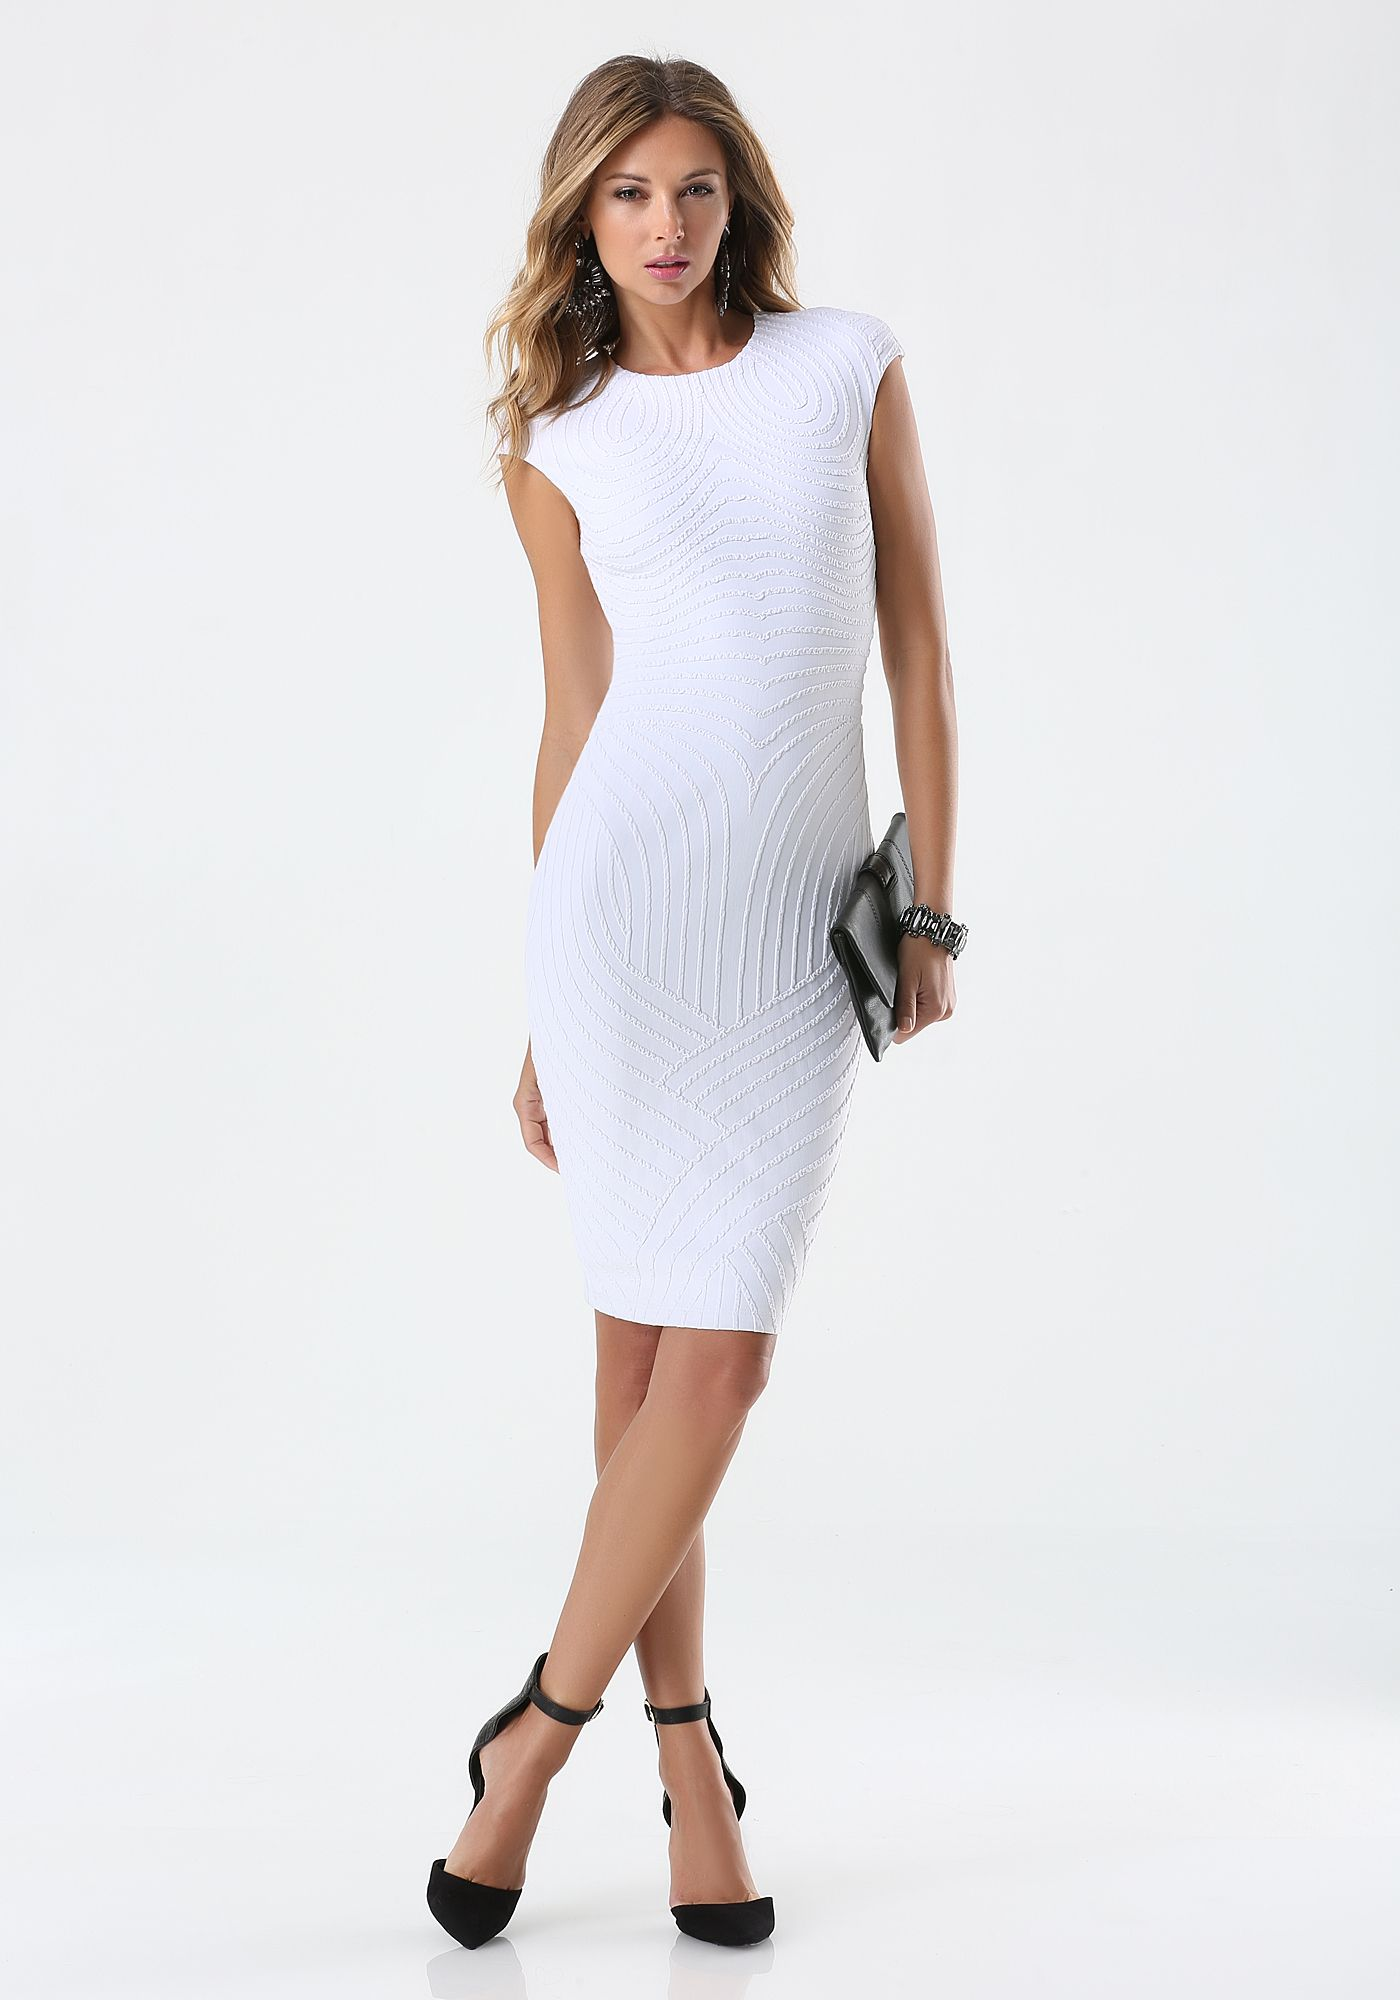 3f07ae0aaab Bebe ---- Textured-Midi-Dress ---- Ludi Delfino ---- 249927-wht ...